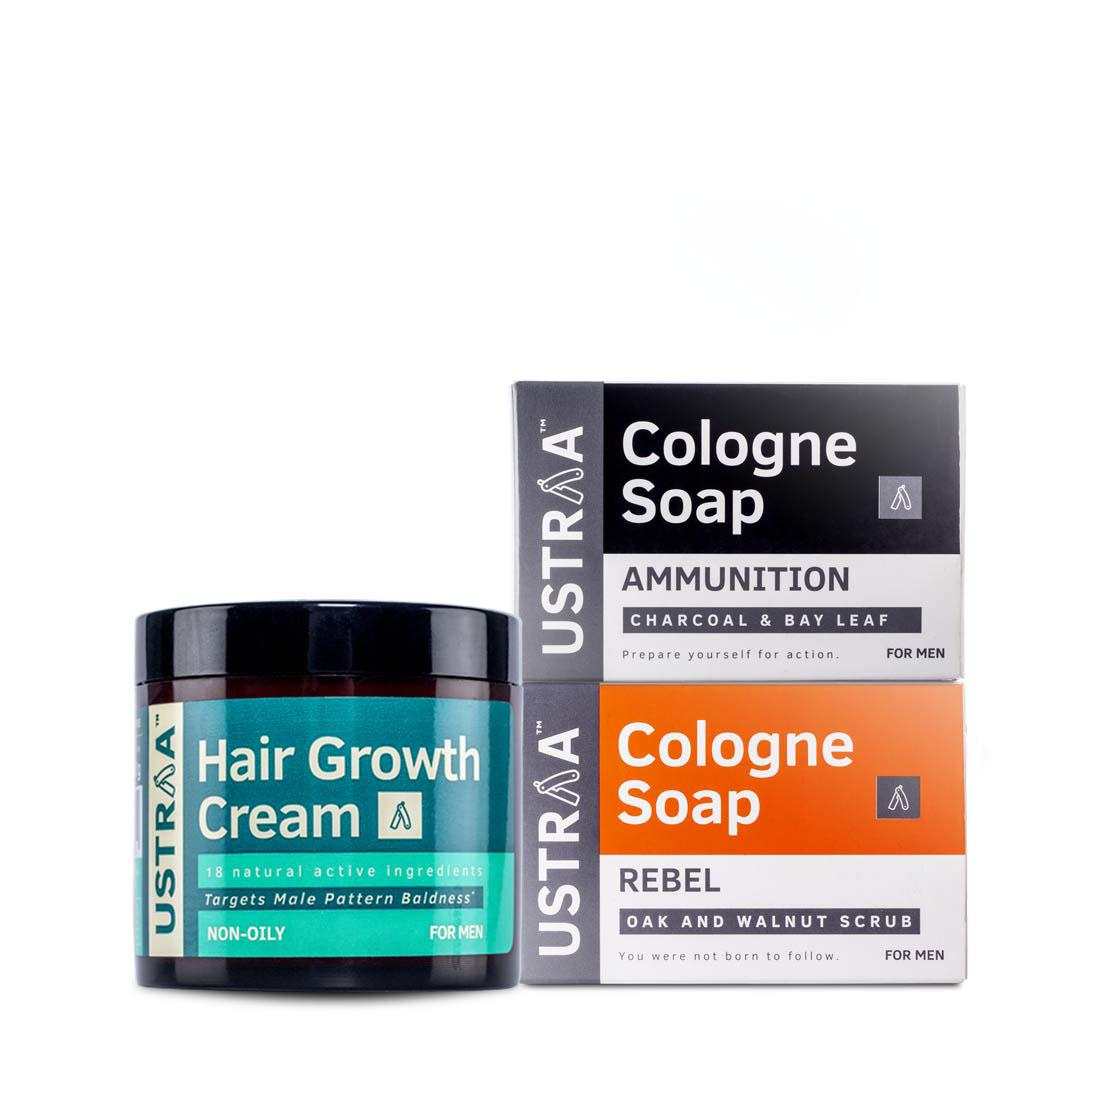 Hair Growth Cream and 2 Ustraa Cologne Soaps